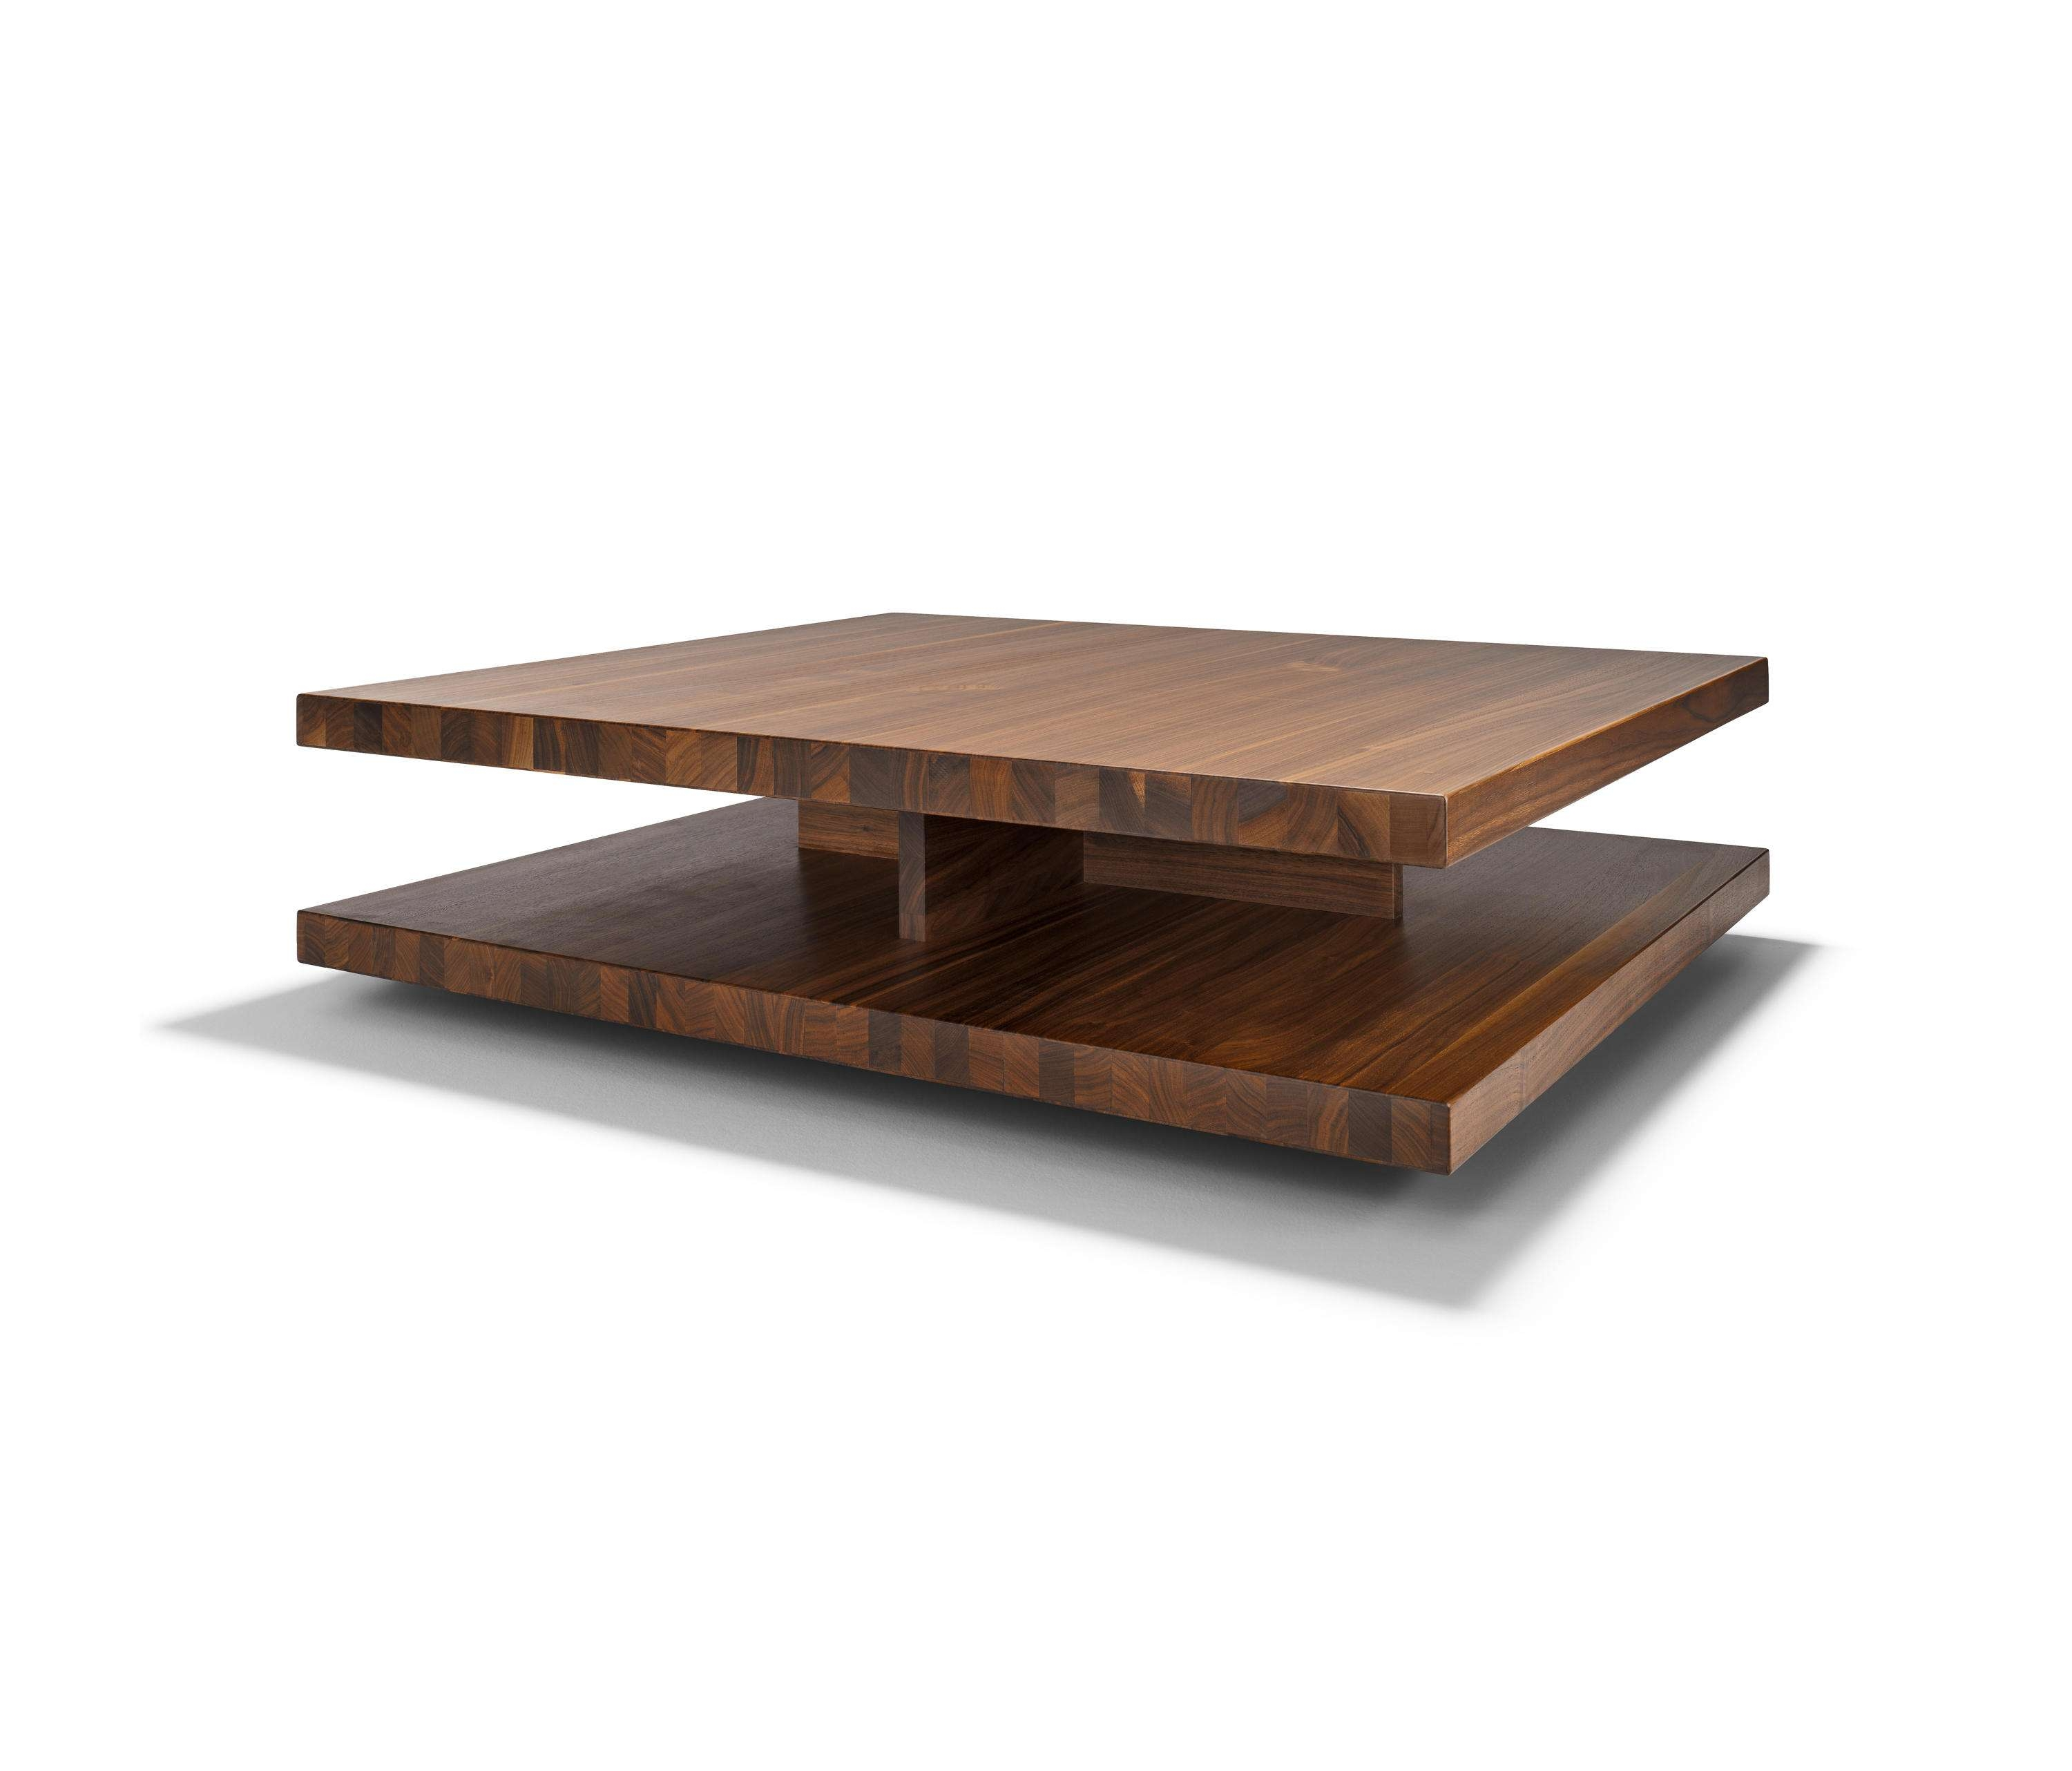 Architonic Pertaining To Best And Newest Large Low Wood Coffee Tables (View 15 of 20)